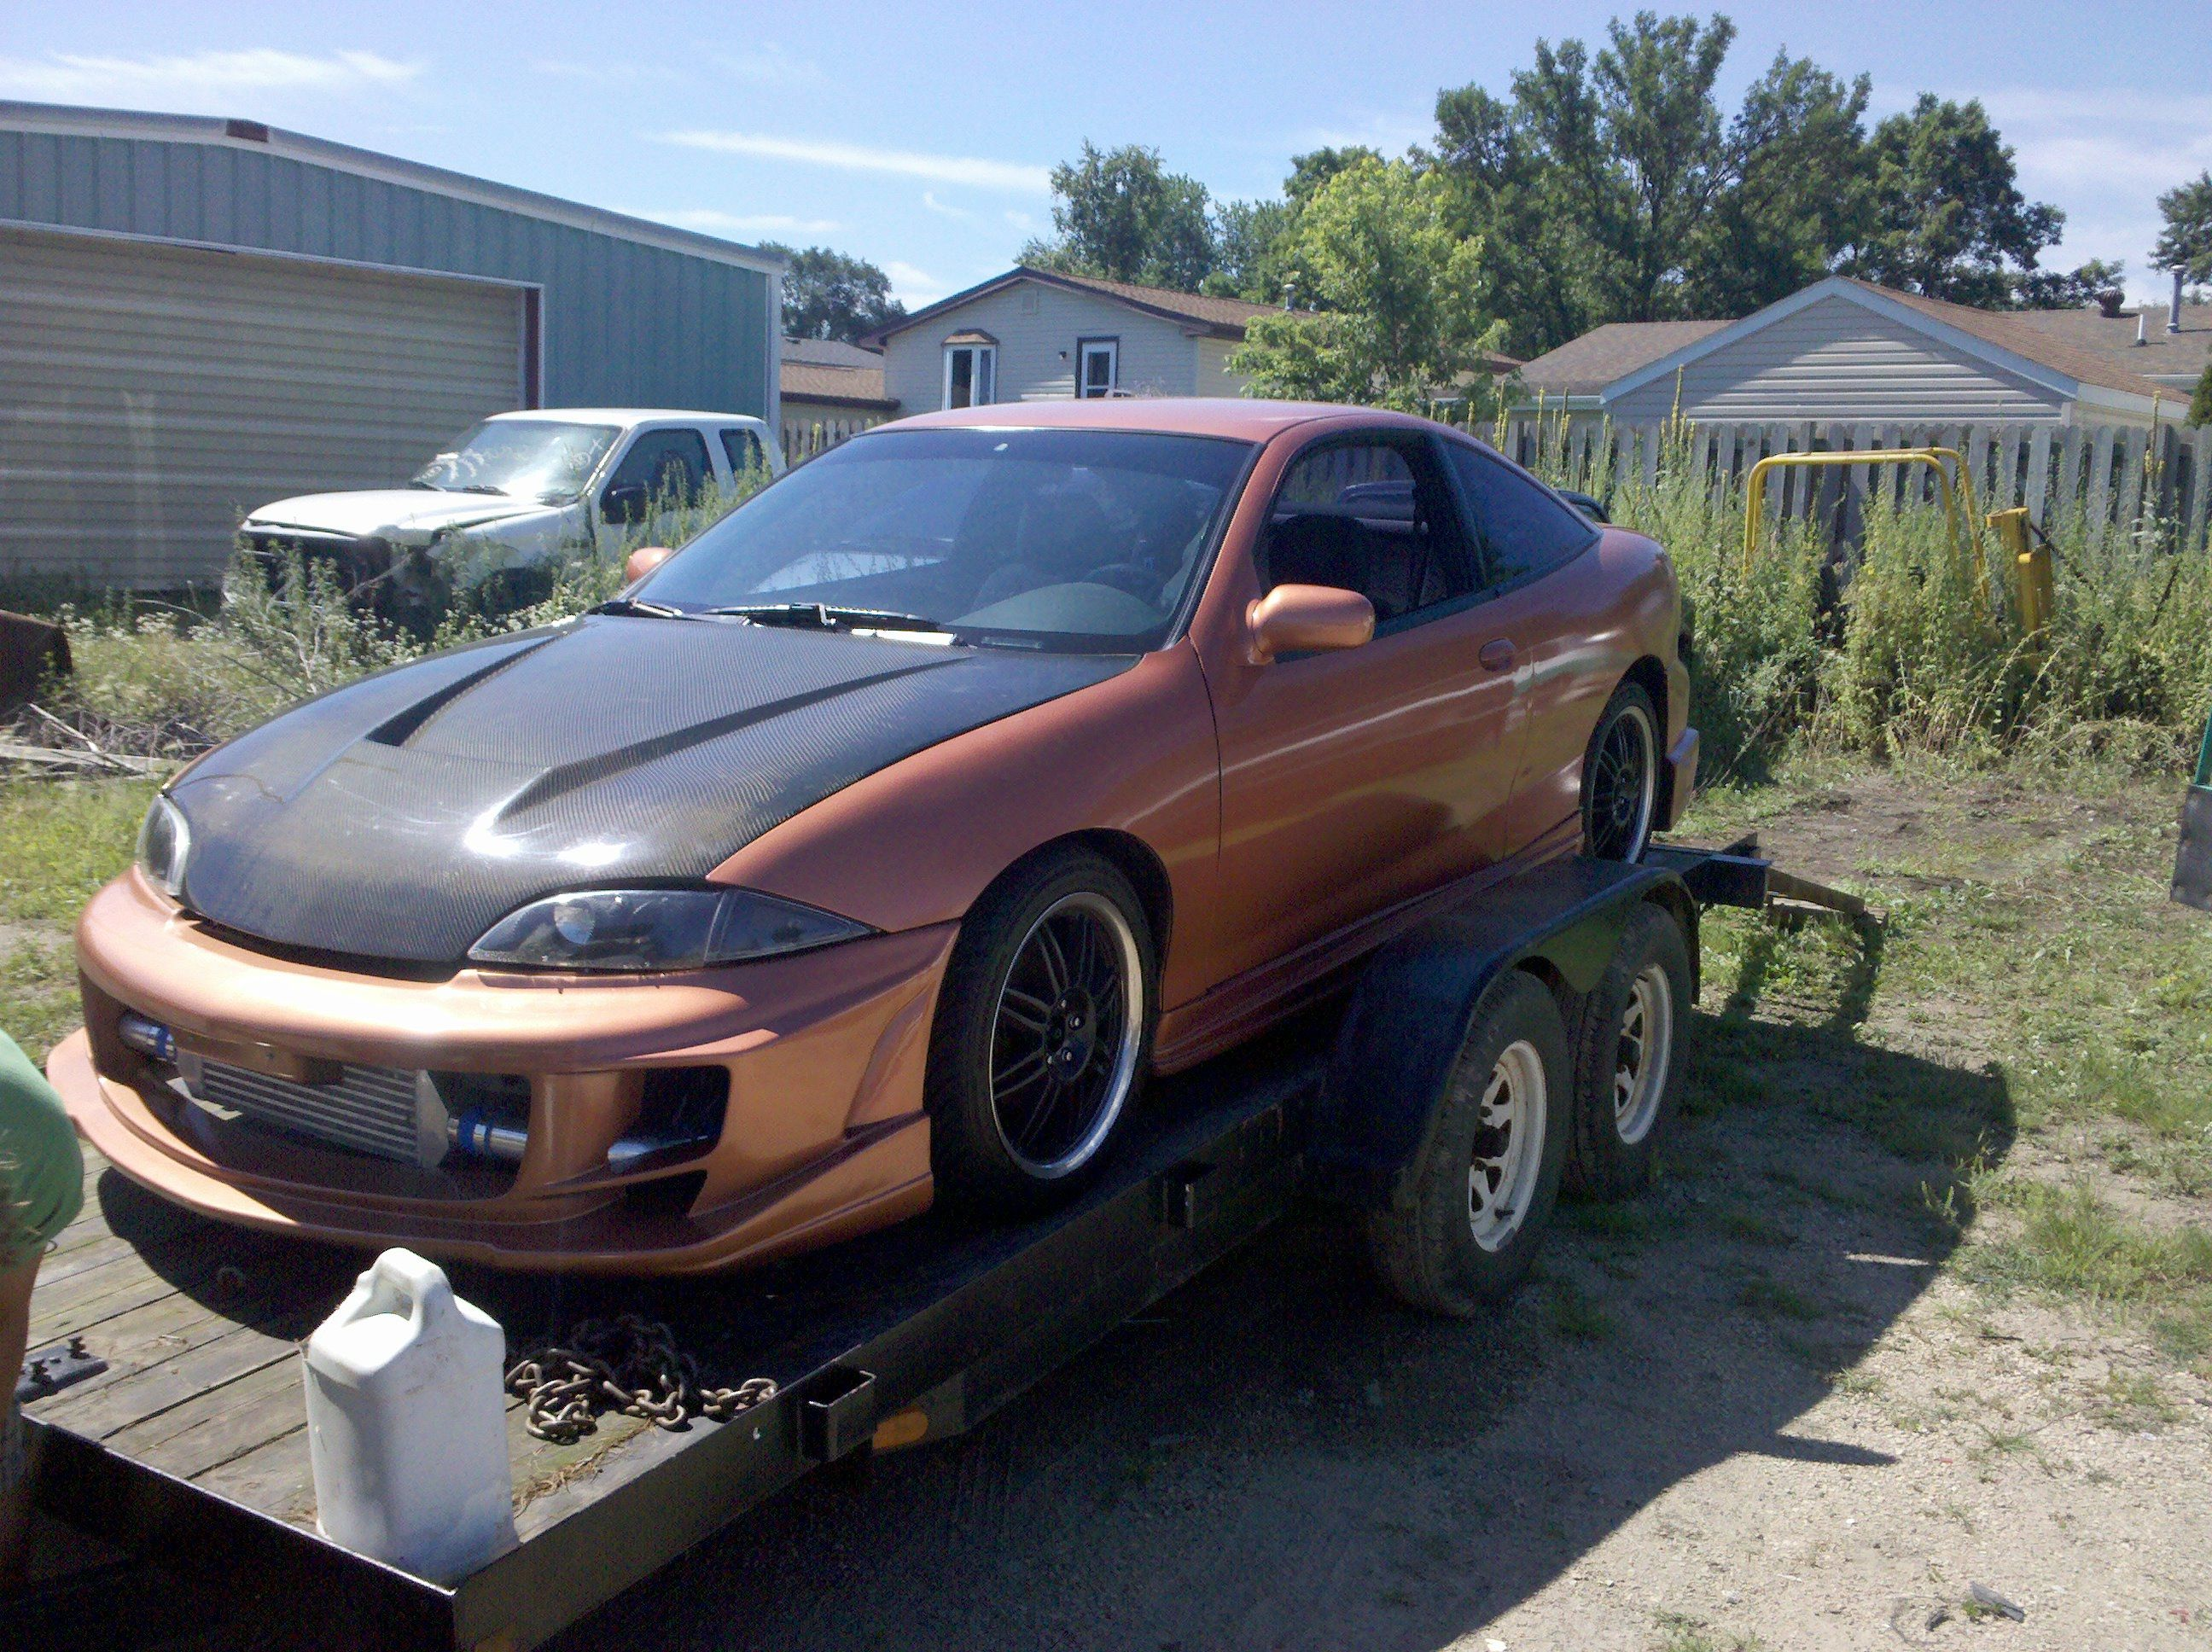 small resolution of view another n204mk 1996 chevrolet cavalier post photo 15168220 of n204mk s 1996 chevrolet cavalier z24 coupe 2d